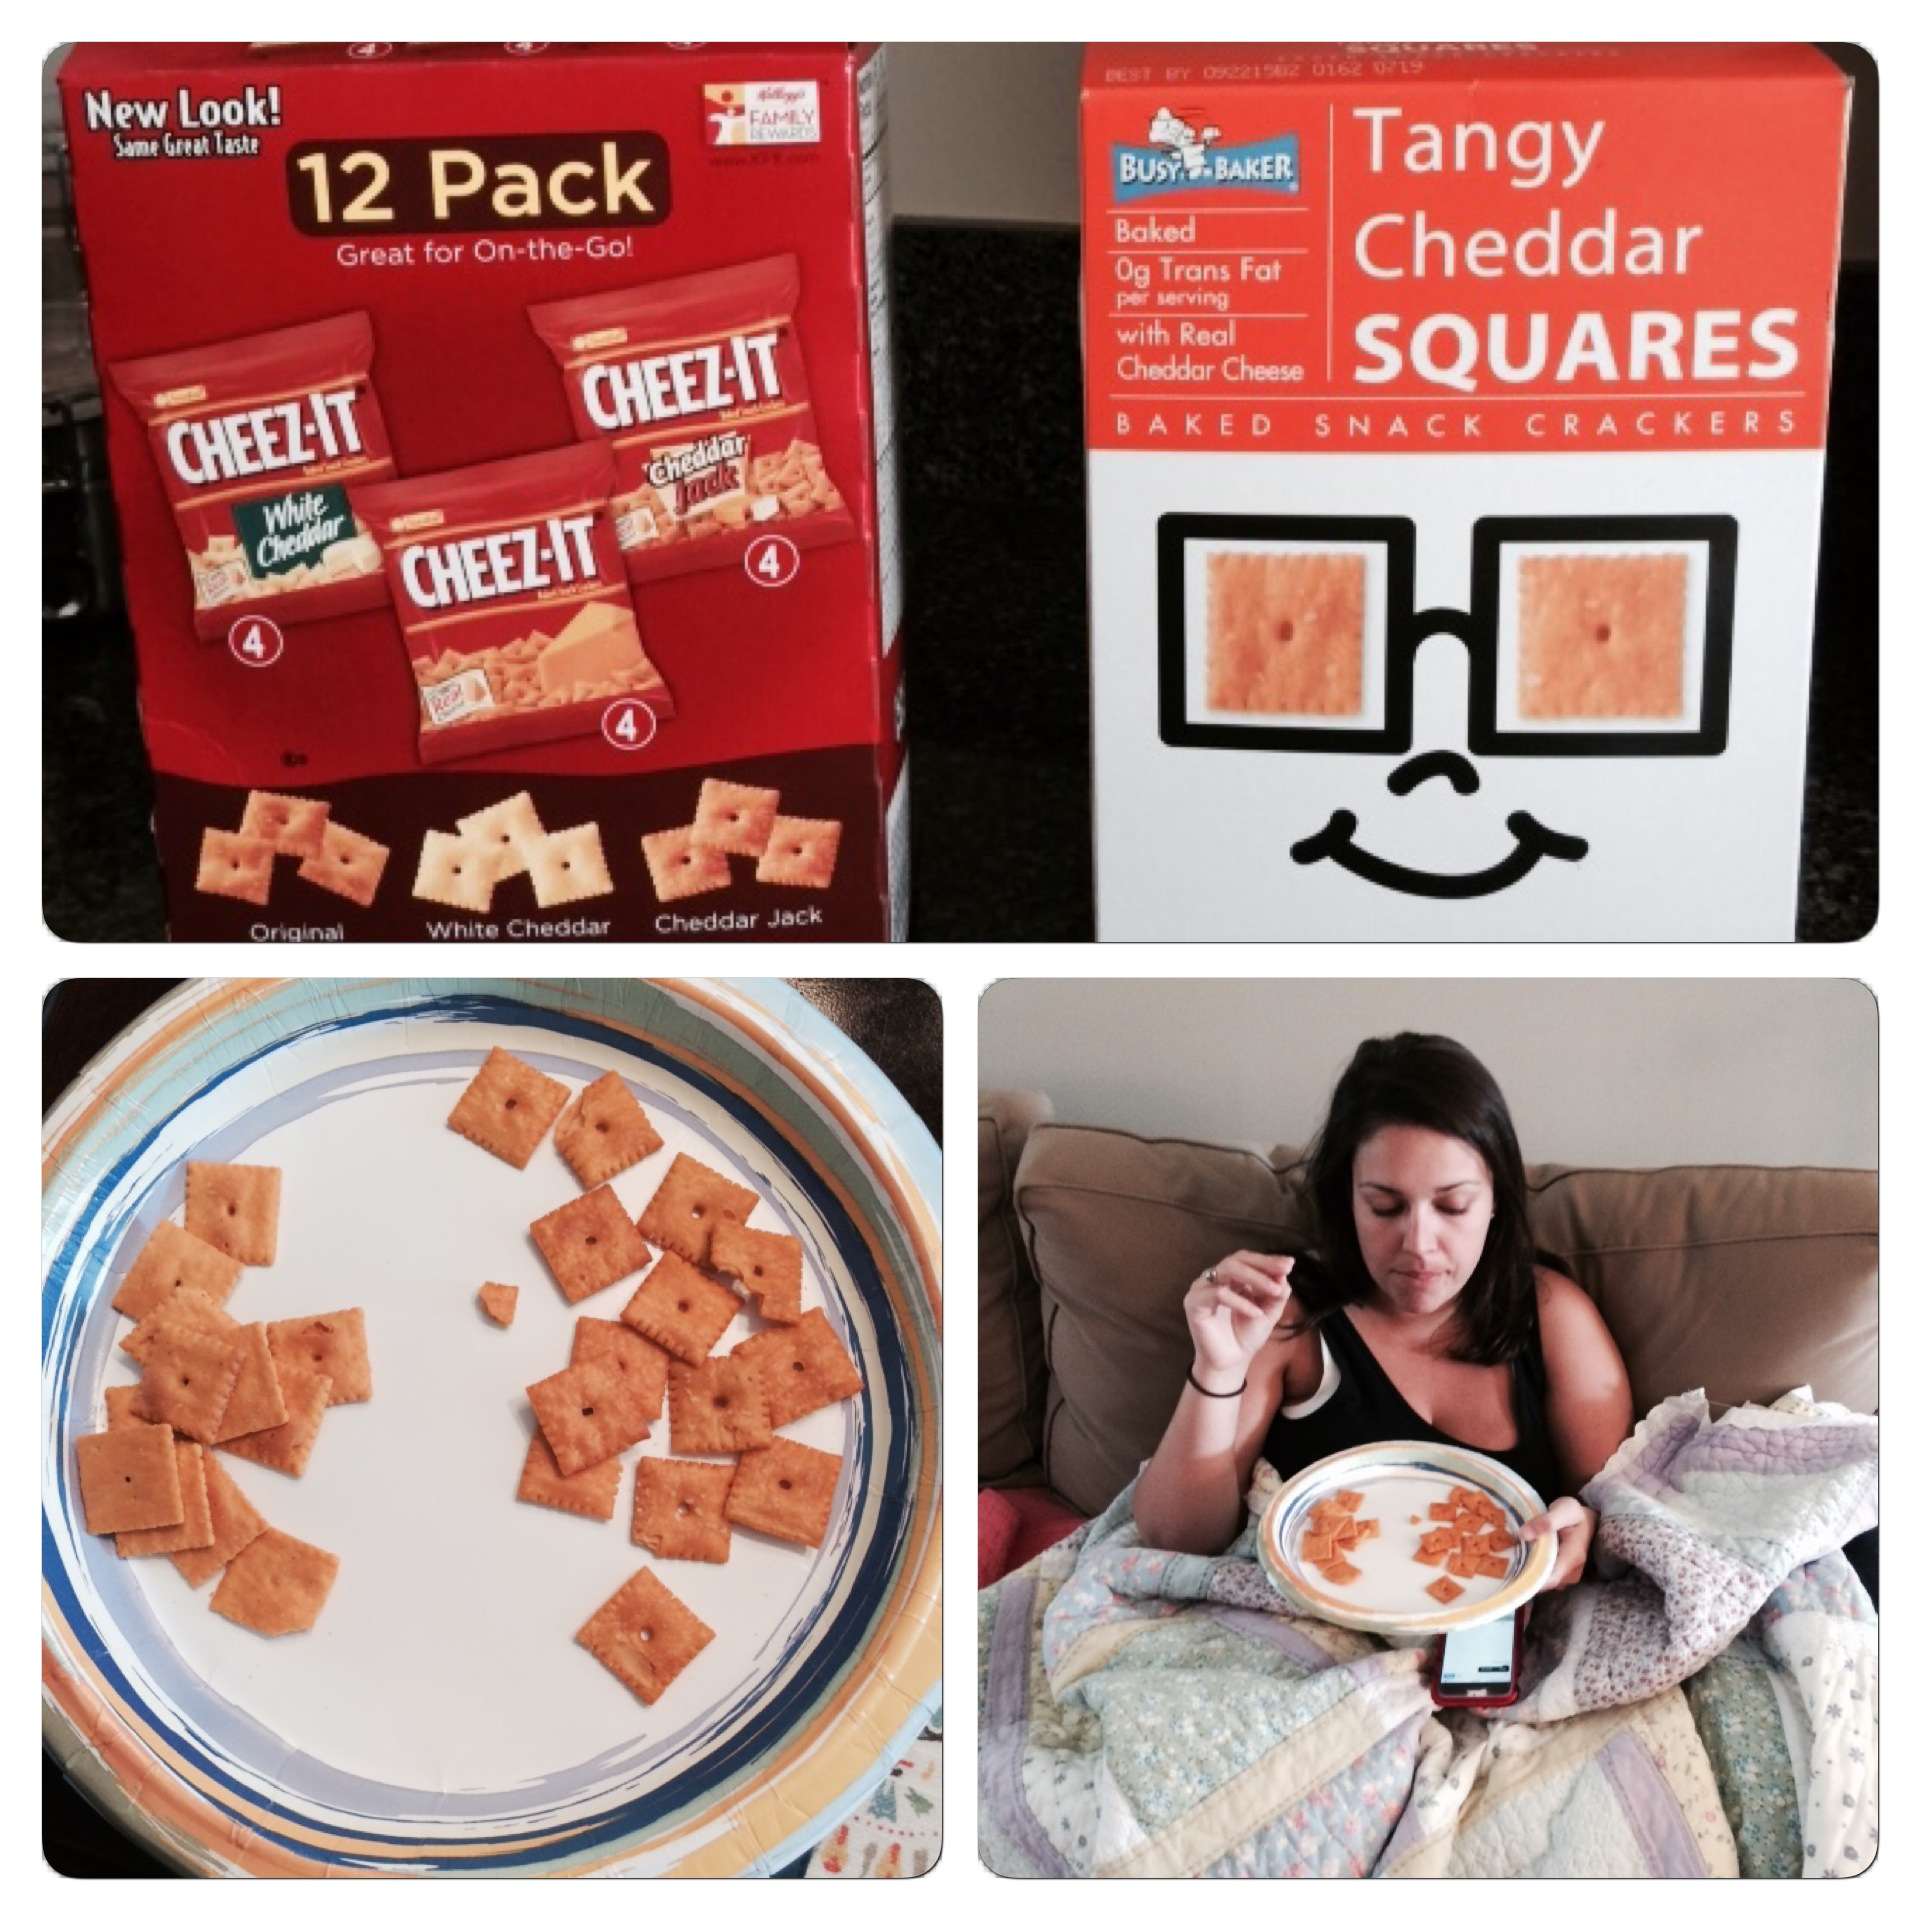 The real Cheez-Its are on the right.